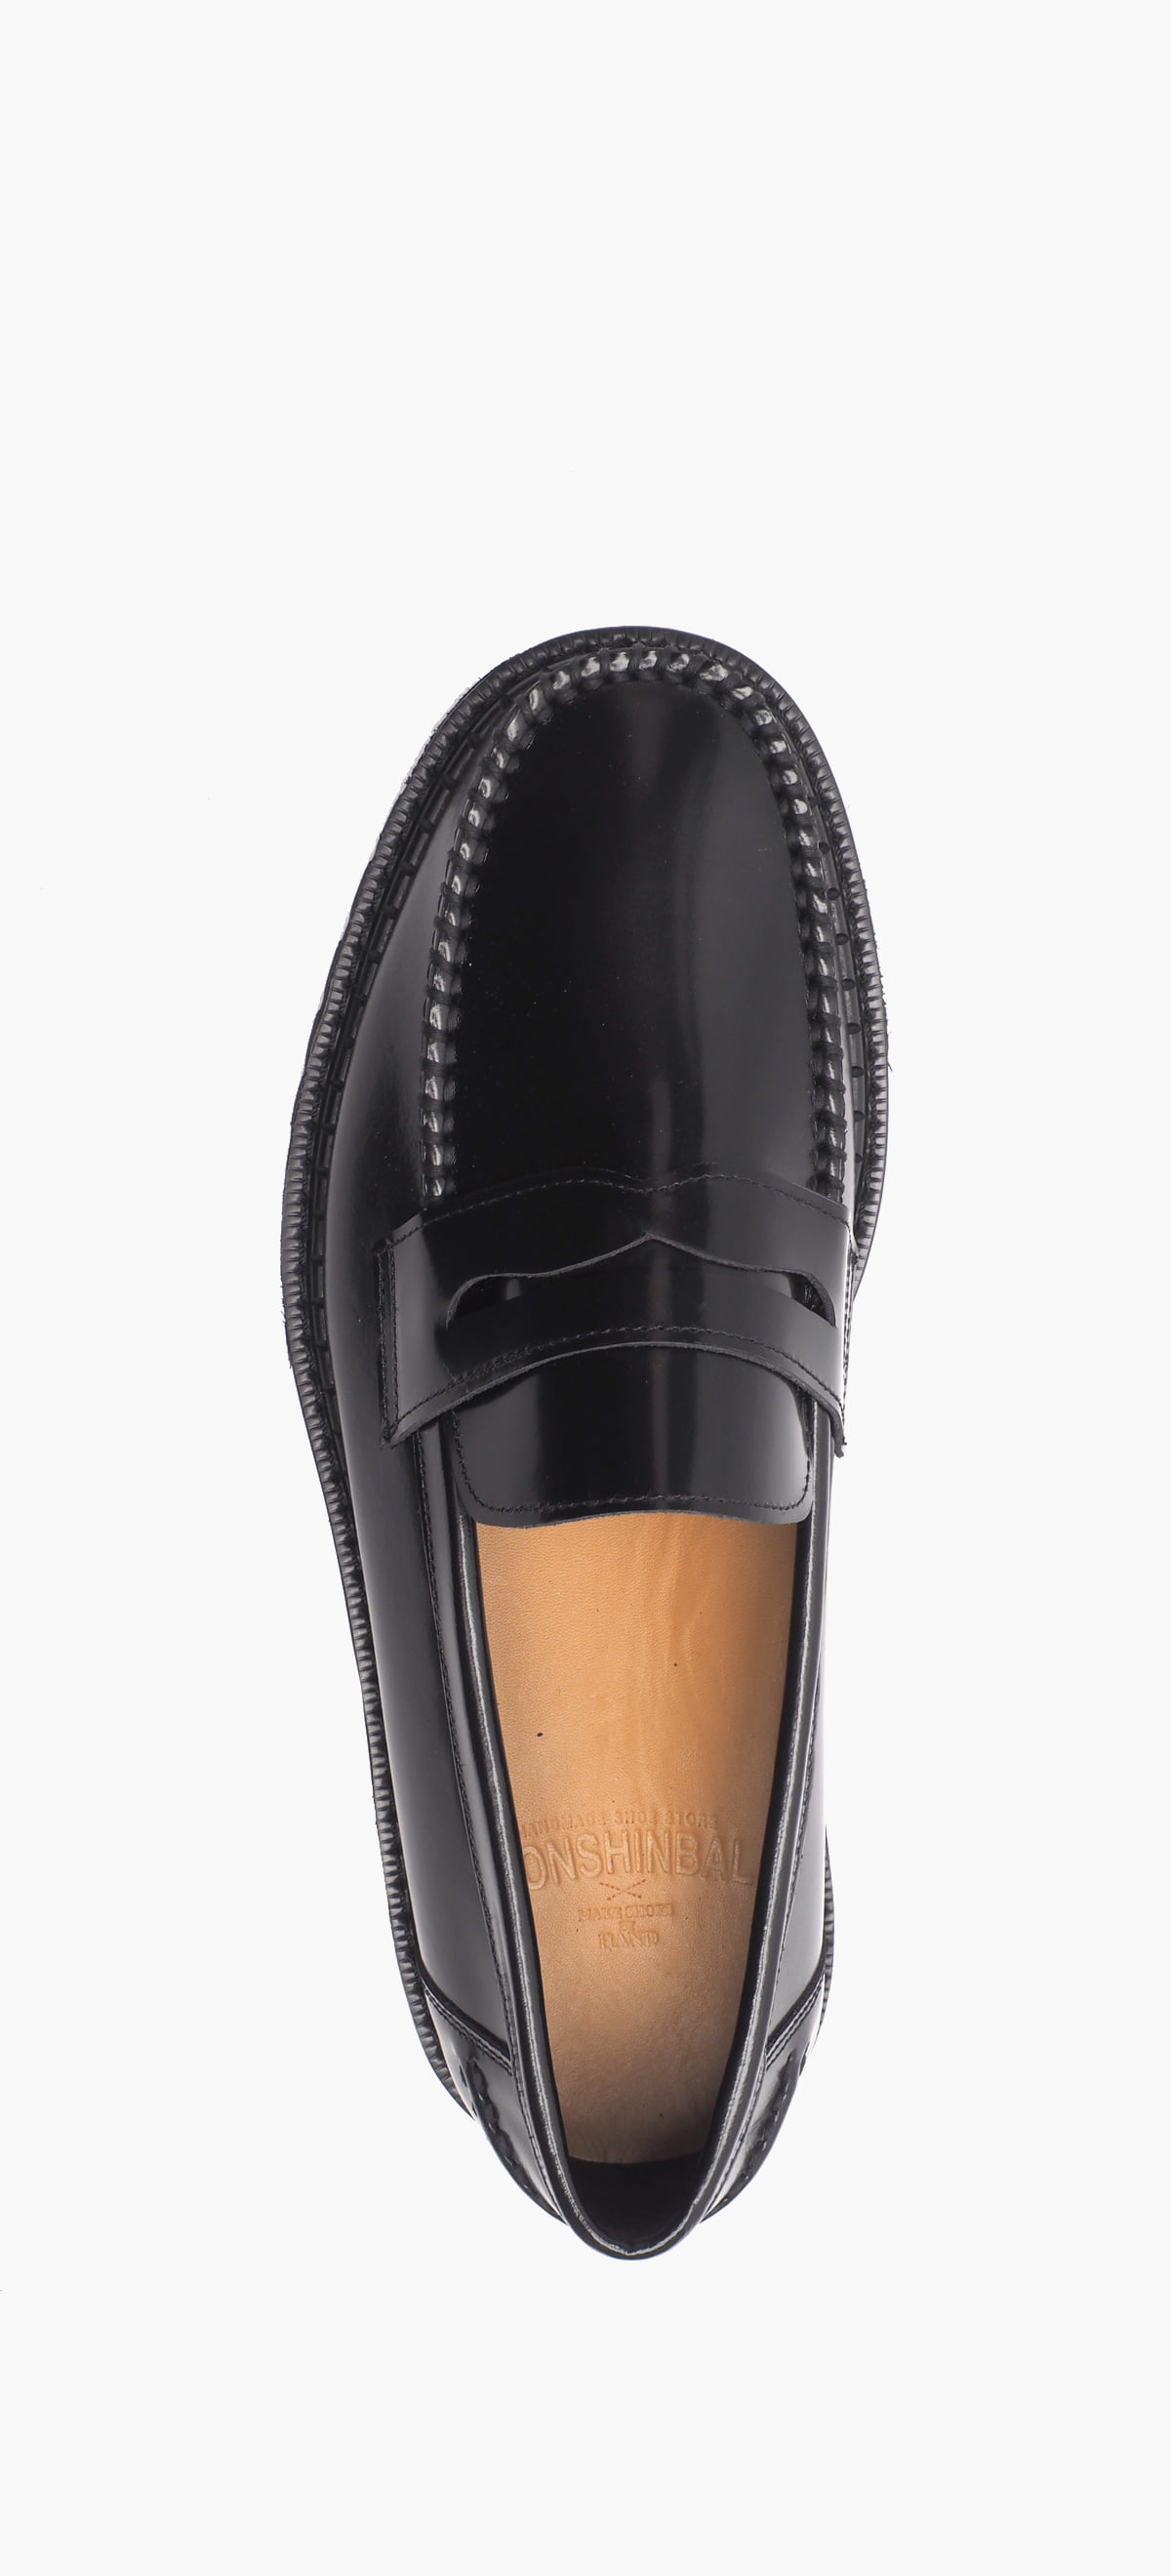 Penny Loafer 2220-08 Black CR Box